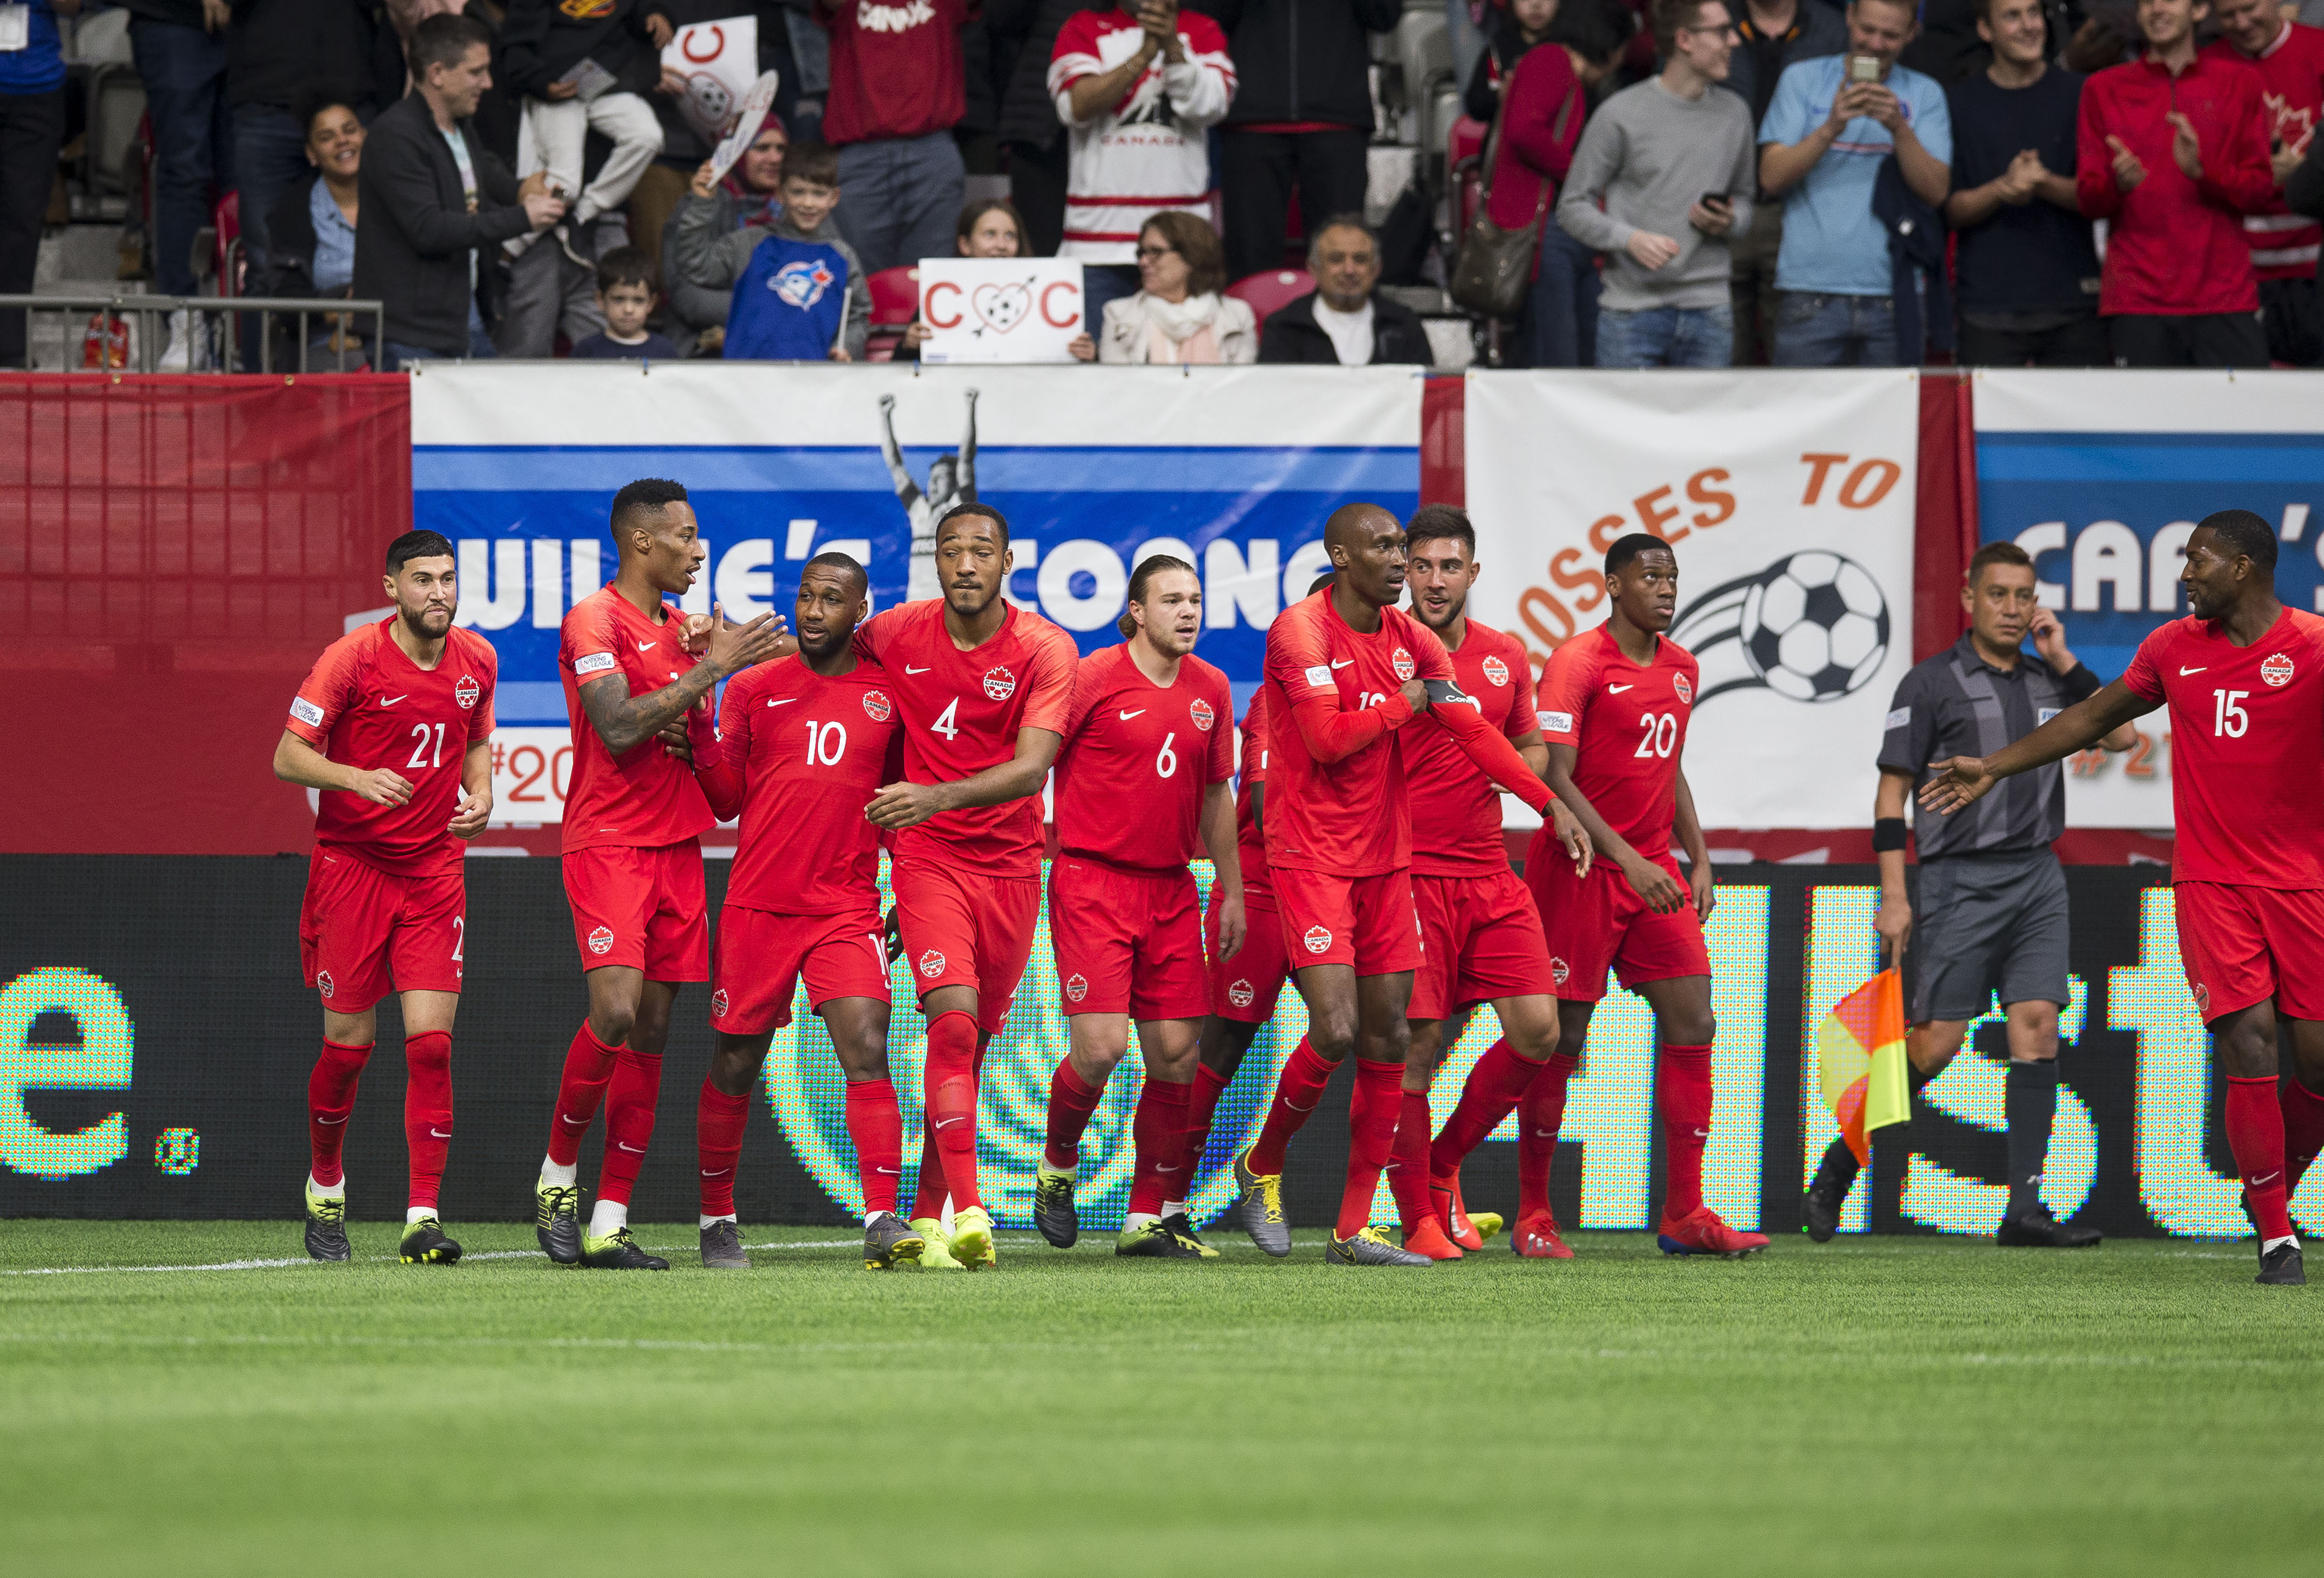 20190324_CANMNT_byFrid038